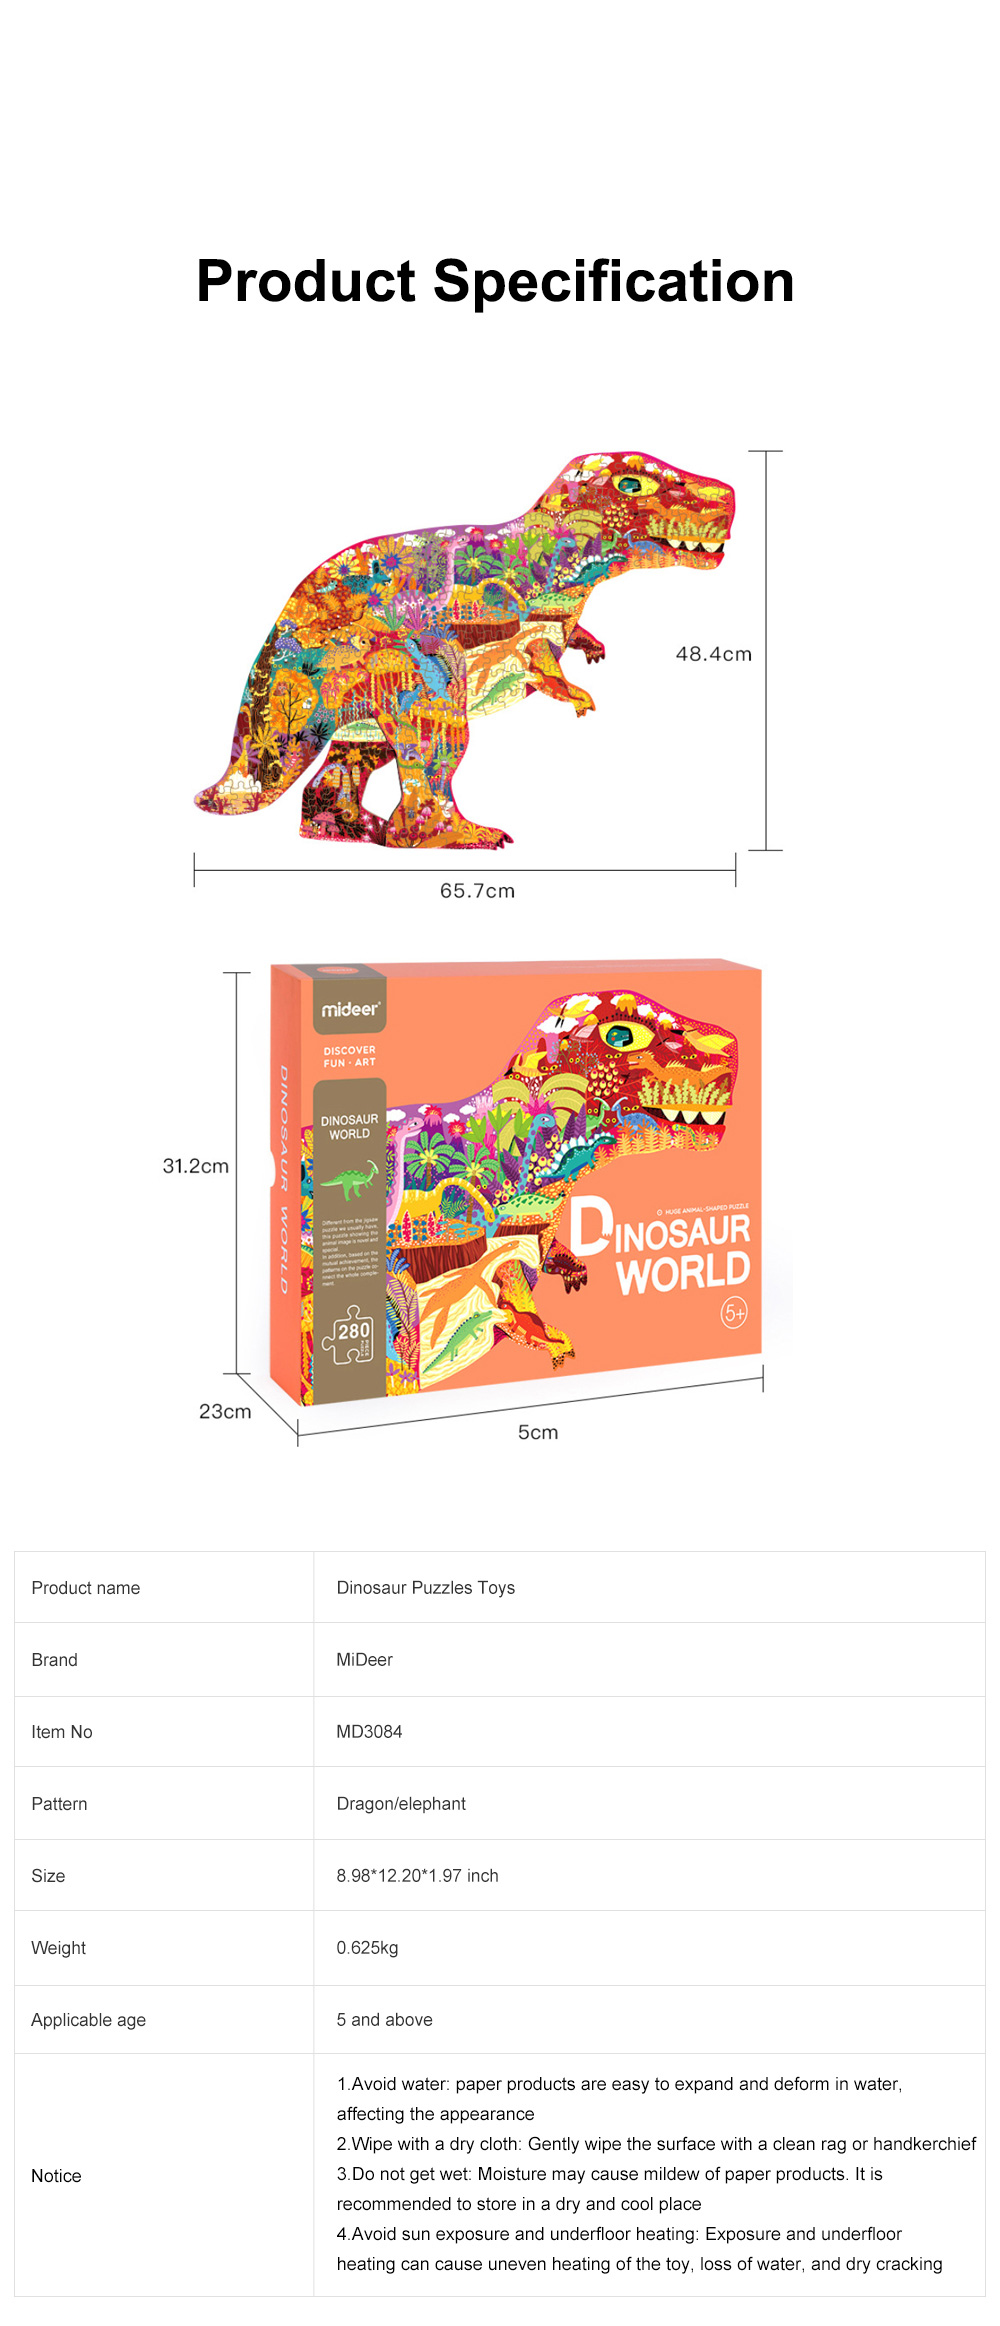 280 Pcs Dinosaur Puzzles Toys with Rich Scenes Educational Puzzle Toys for Above 5 Years Children of and Parent-Child Interaction 6